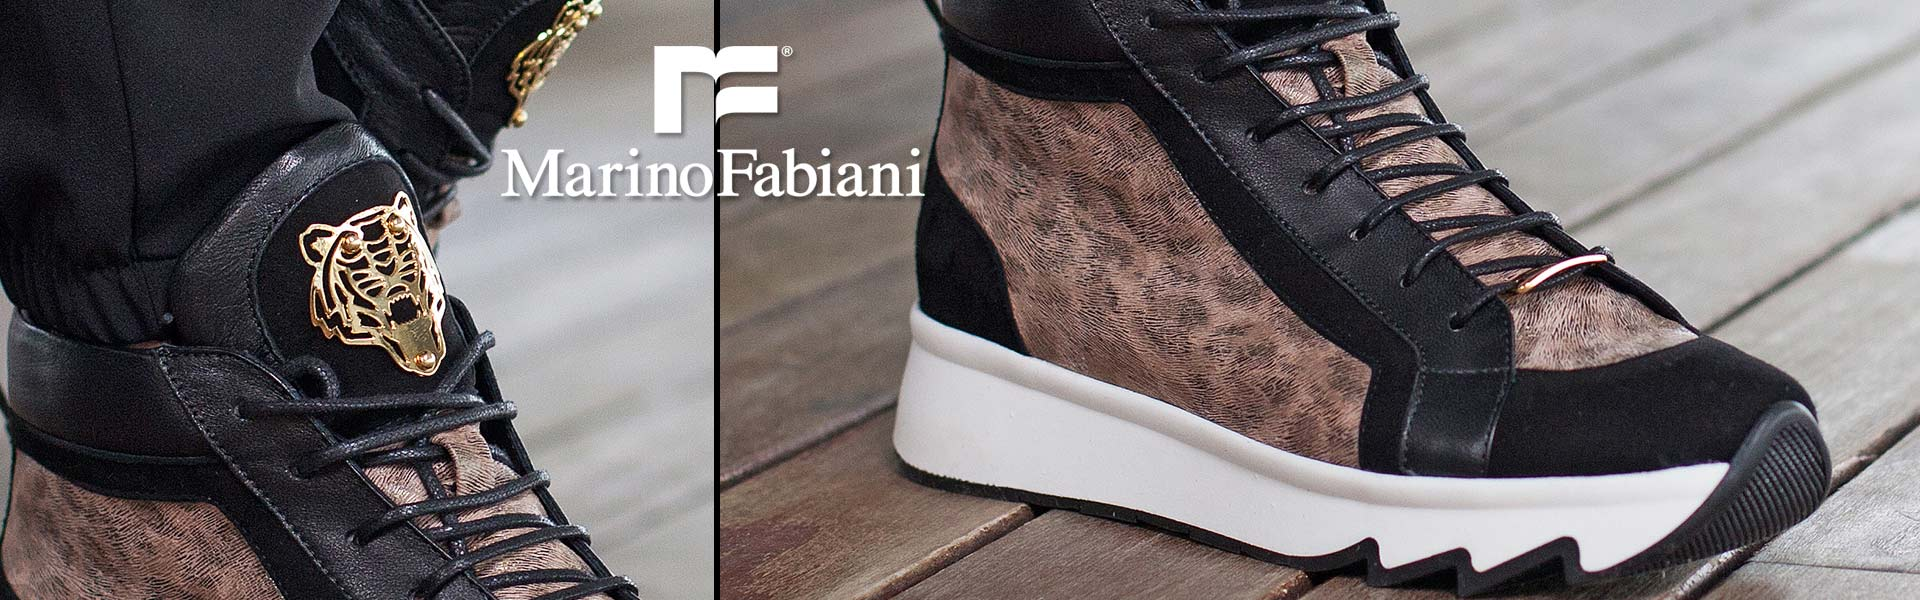 Advertising Marino Fabiani Italian Women S Shoes Luxury